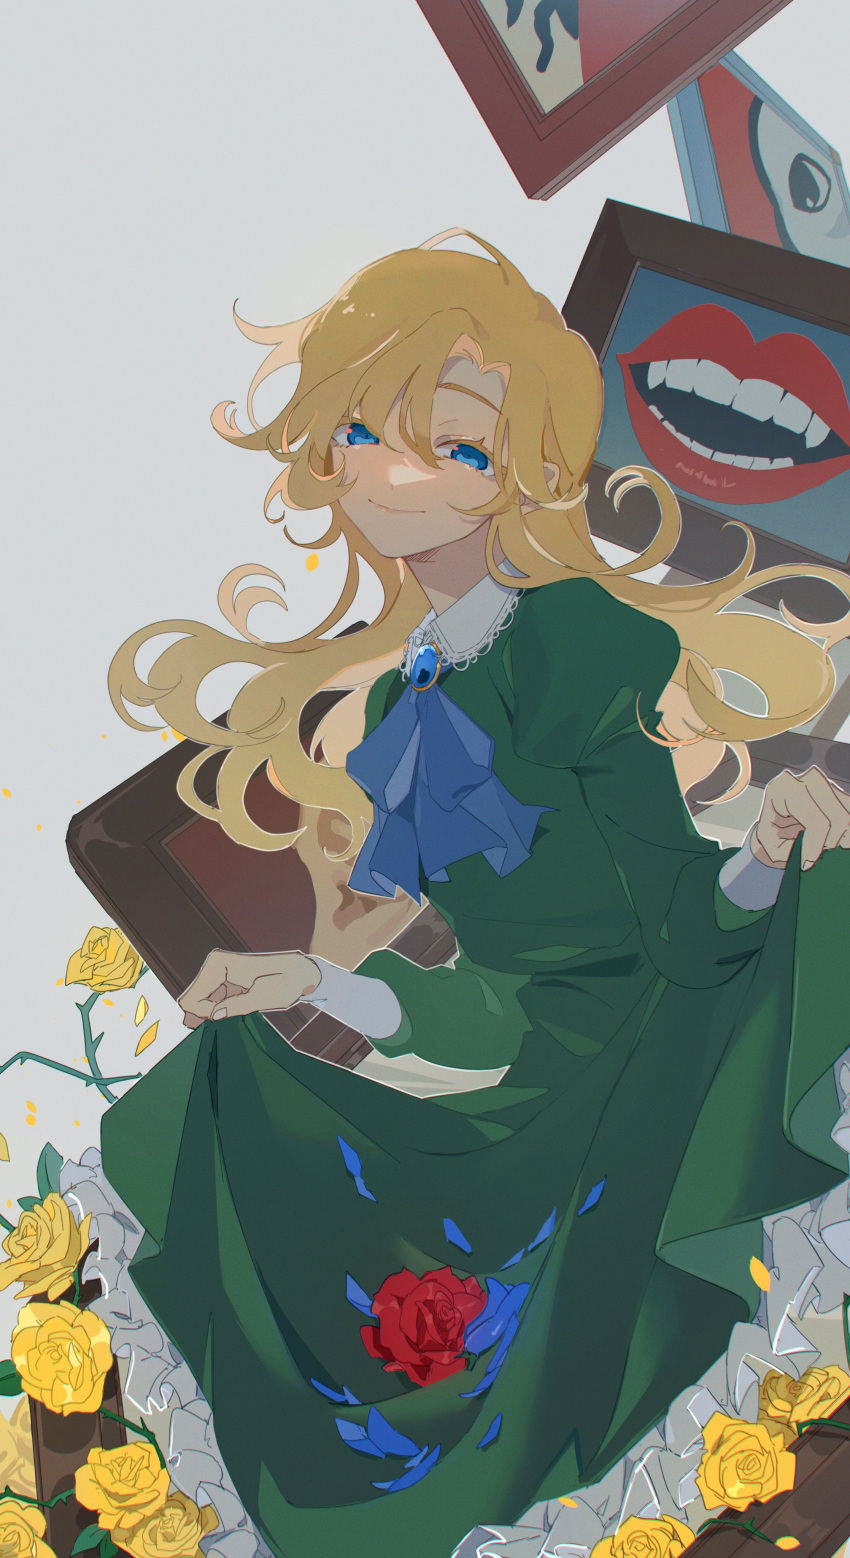 1girl absurdres blonde_hair blue_flower blue_neckwear blue_rose cravat dress flower frilled_dress frills green_dress grey_background highres ib juliet_sleeves kkaags lace-trimmed_collar lace_trim lips long_hair long_sleeves looking_at_viewer mary_(ib) mouth painting_(object) petals puffy_sleeves red_flower red_rose rose rose_petals skirt skirt_lift smile solo teeth thorns yellow_flower yellow_rose